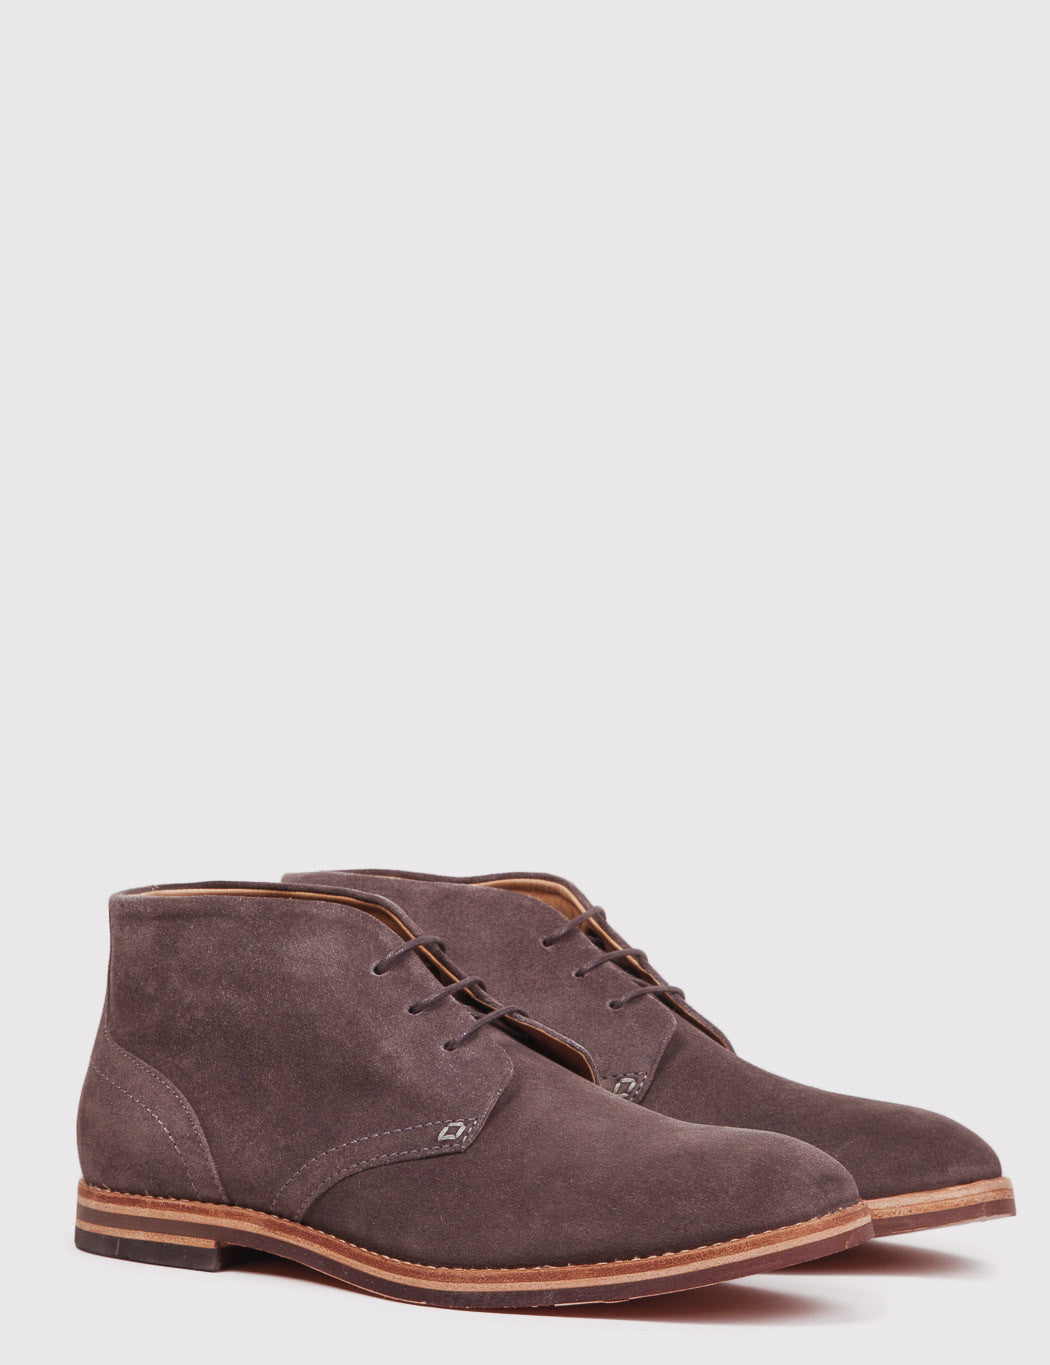 Hudson Houghton 3 Suede Boots - Brown